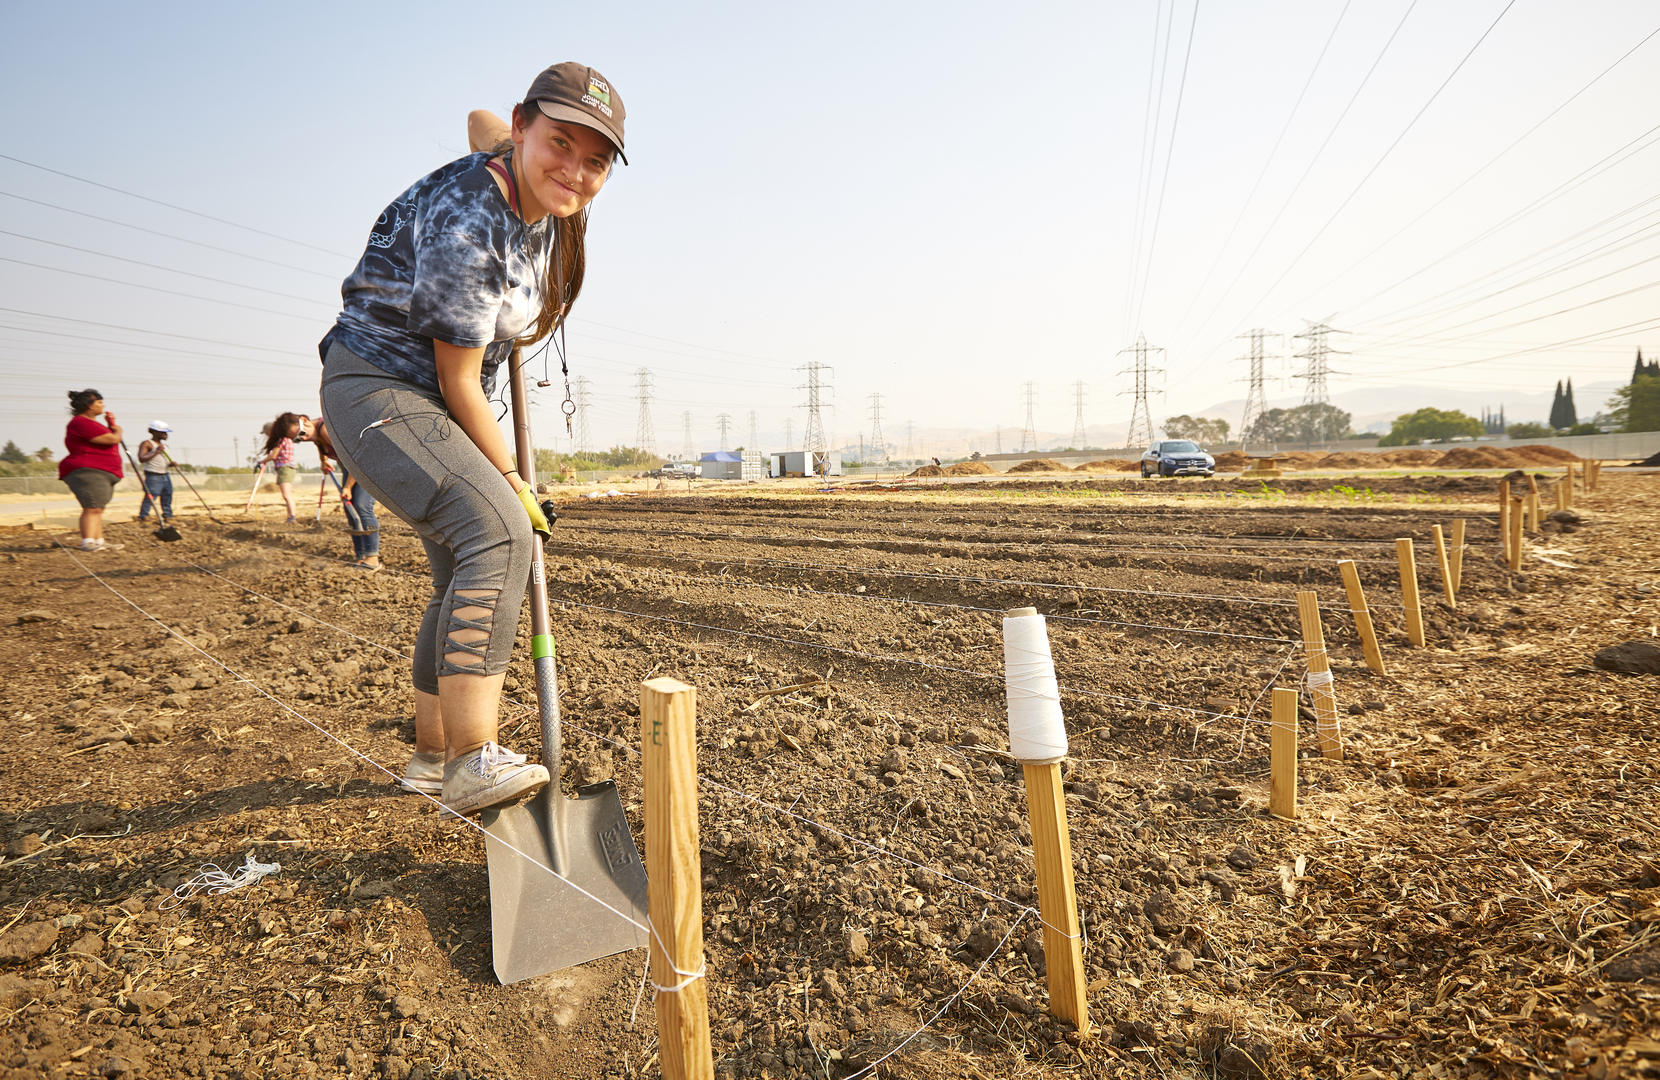 Young woman shoveling soil in an open field, preparing for planting.